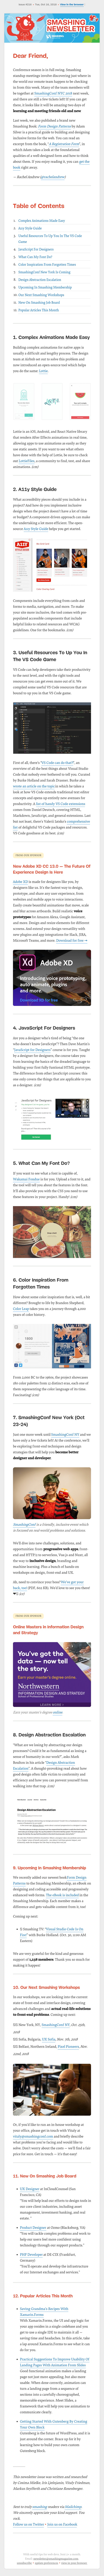 Smashing Newsletter #216: JavaScript for Designers and A11y Style Guide